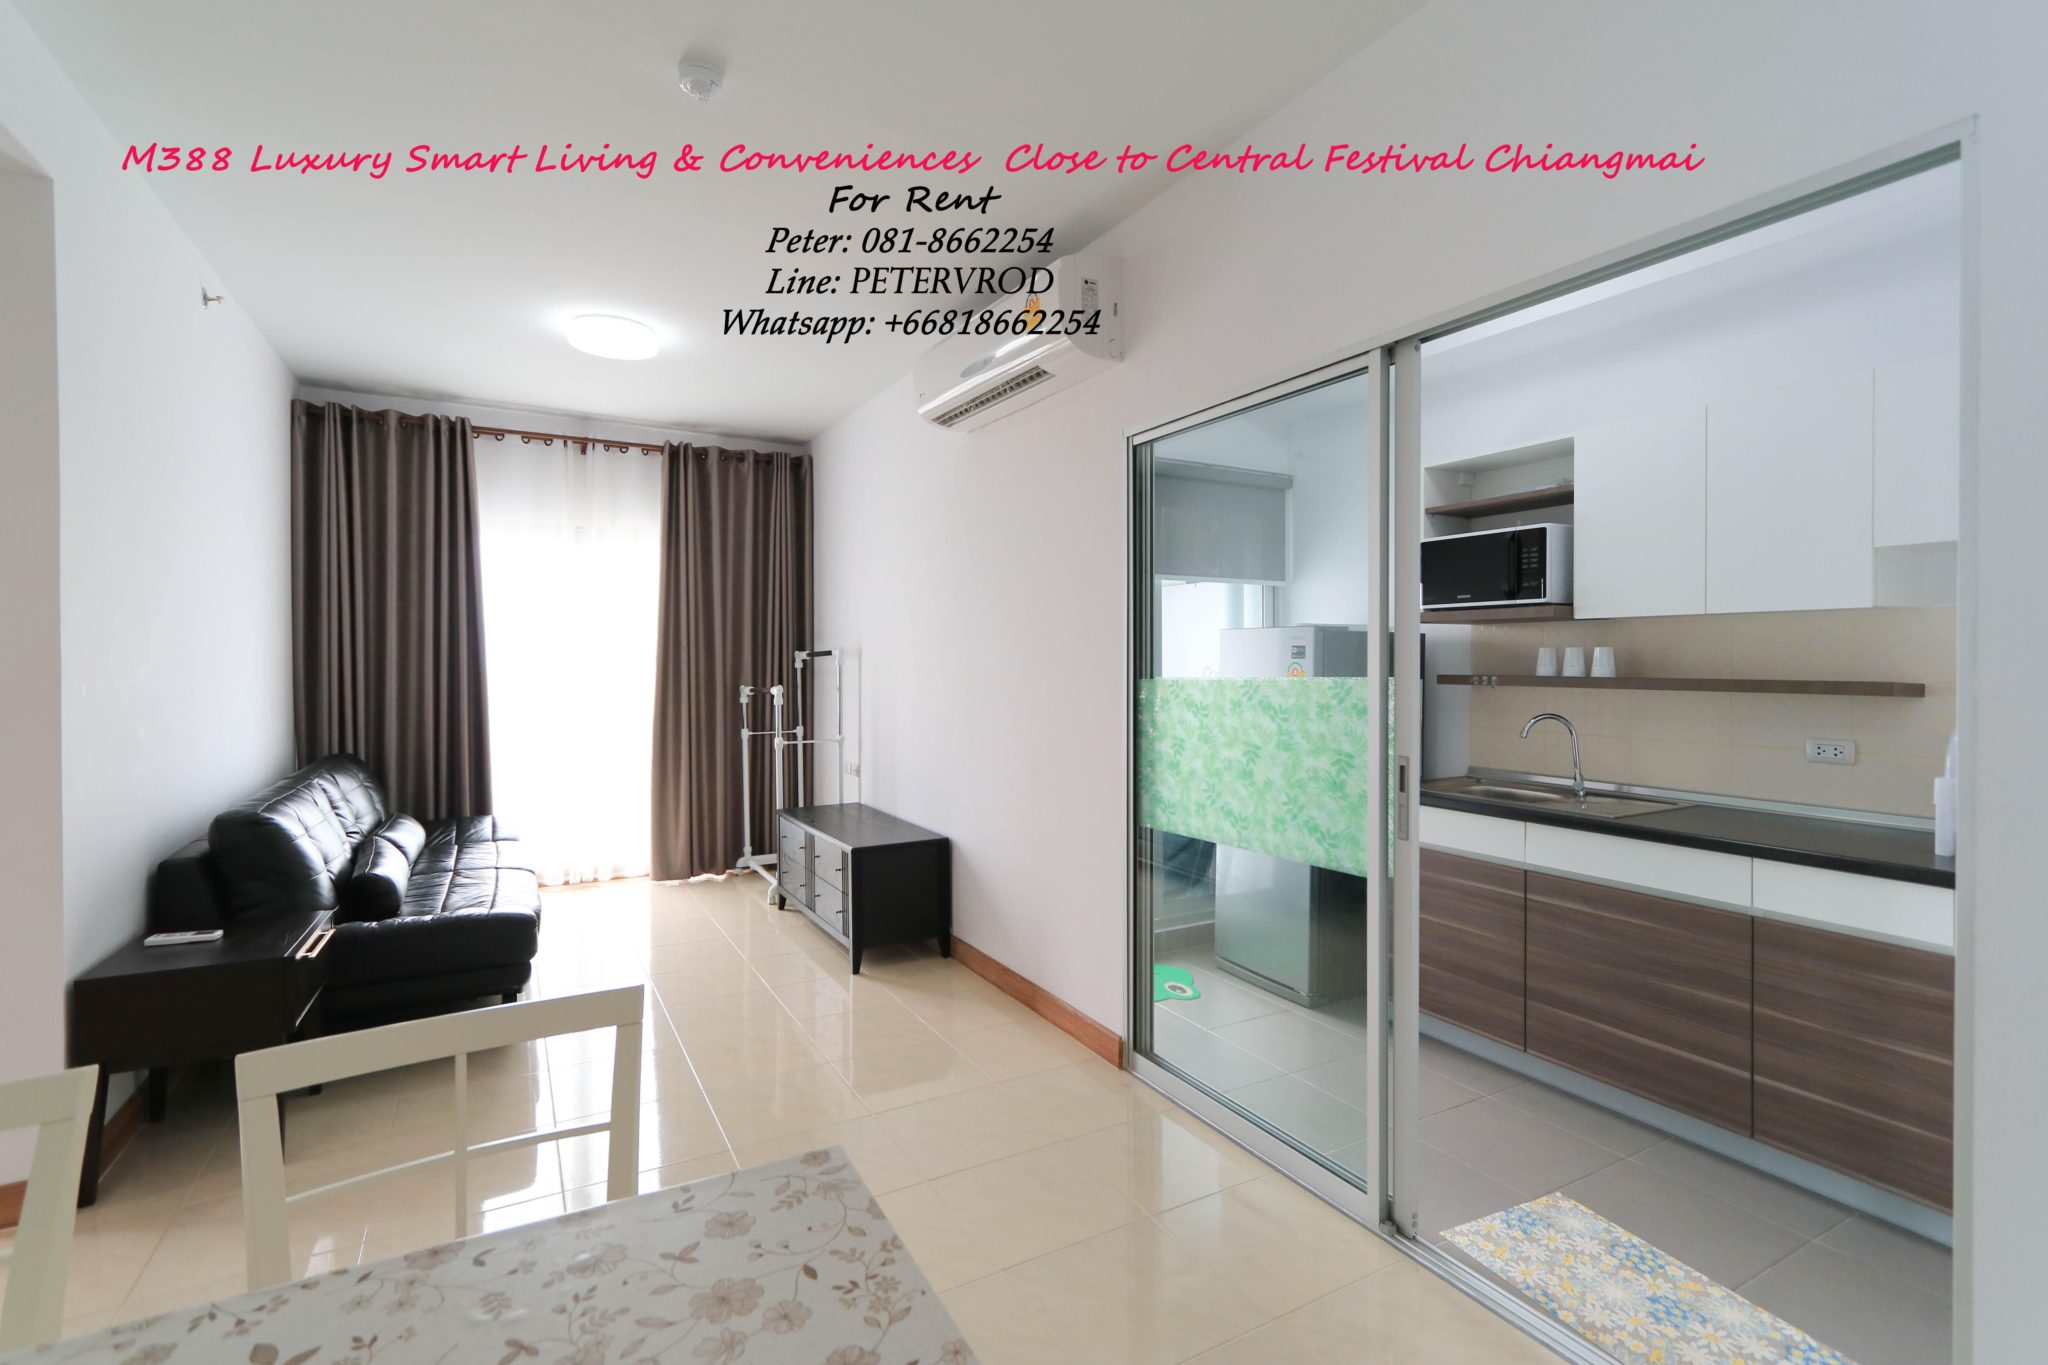 2 Bedroom Condo To Rent At Supalai Monte 1 Condo Chiang Mai